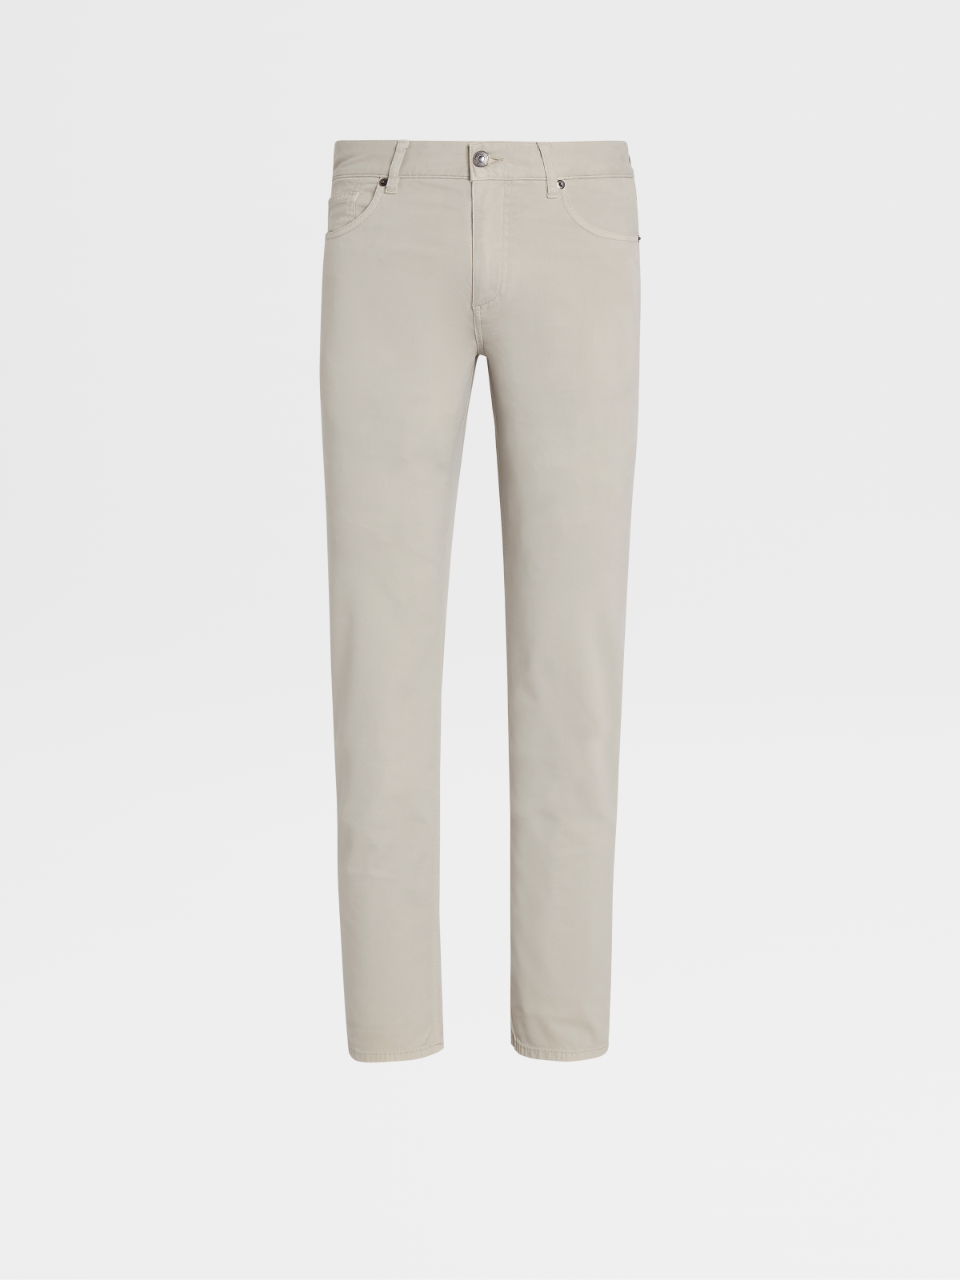 Stretch Cotton And Lyocell 5-Pocket Jeans